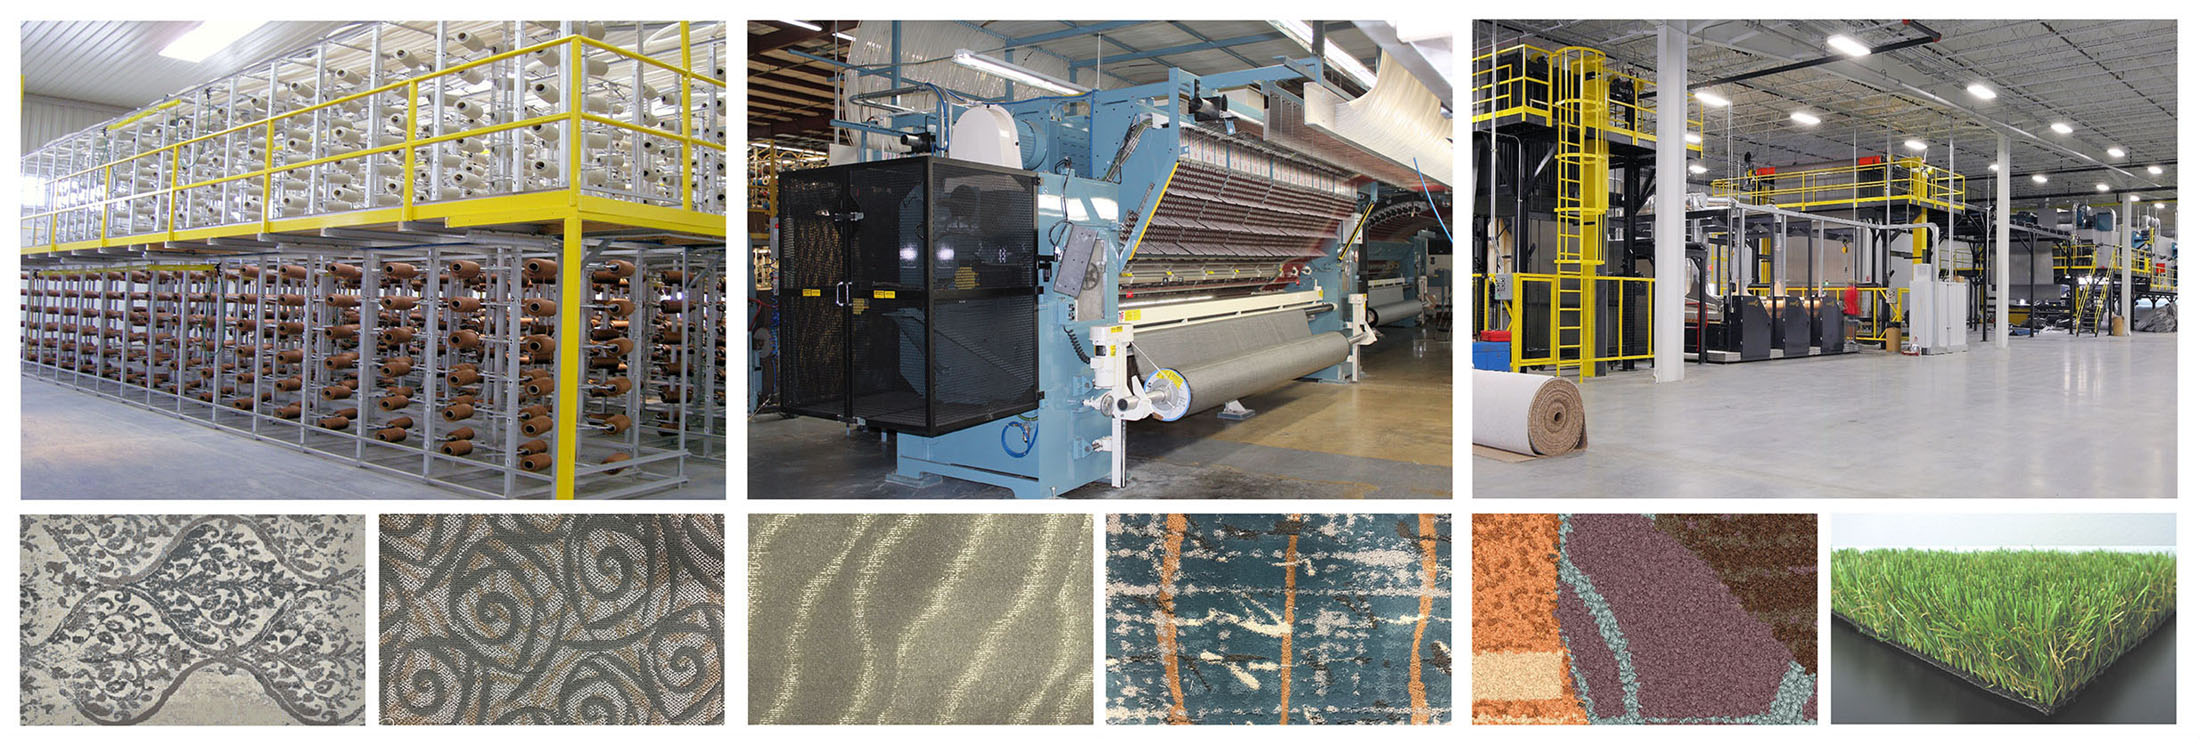 Examples of tufting machines and carpet it produces